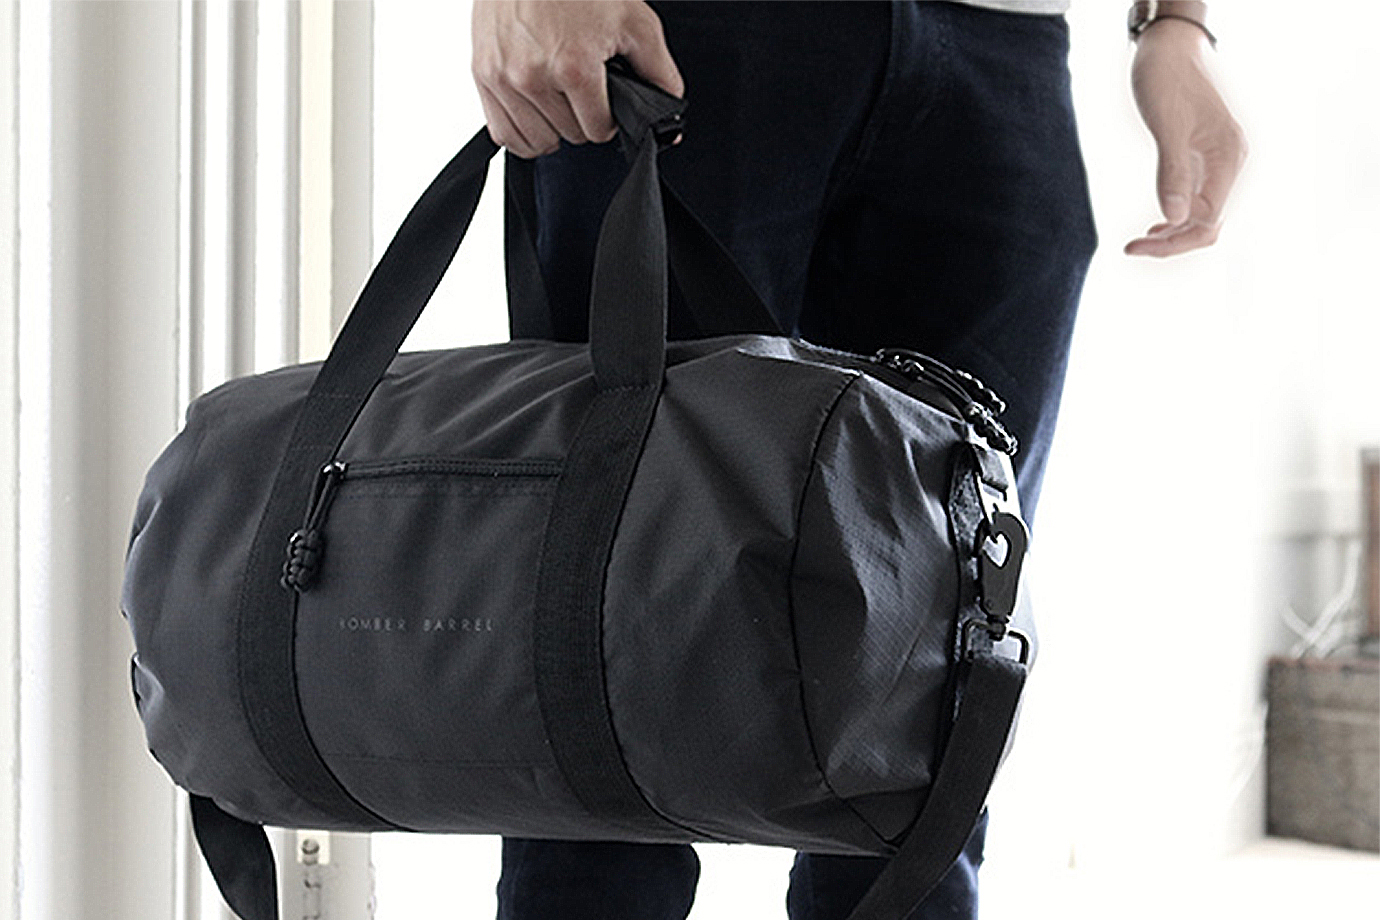 5 Items Every Man Should Travel With (All Up to 65% Off)